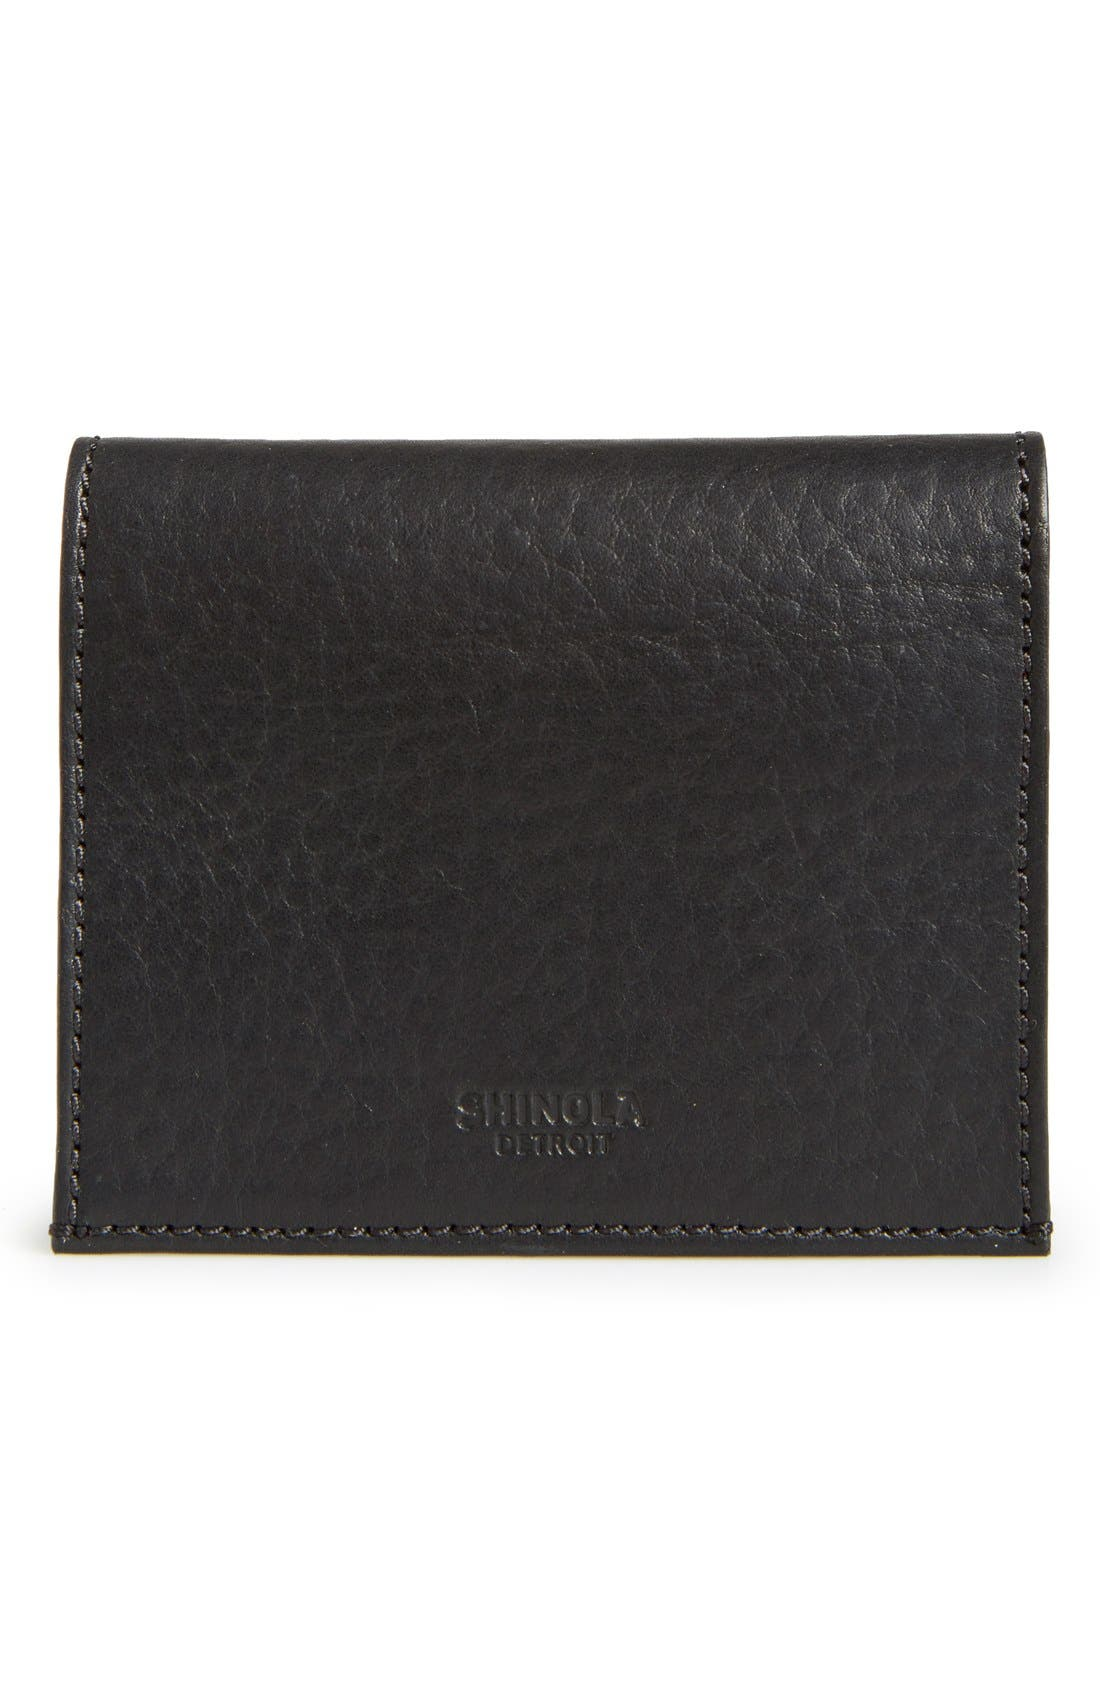 Main Image - Shinola Gusset Leather Card Case